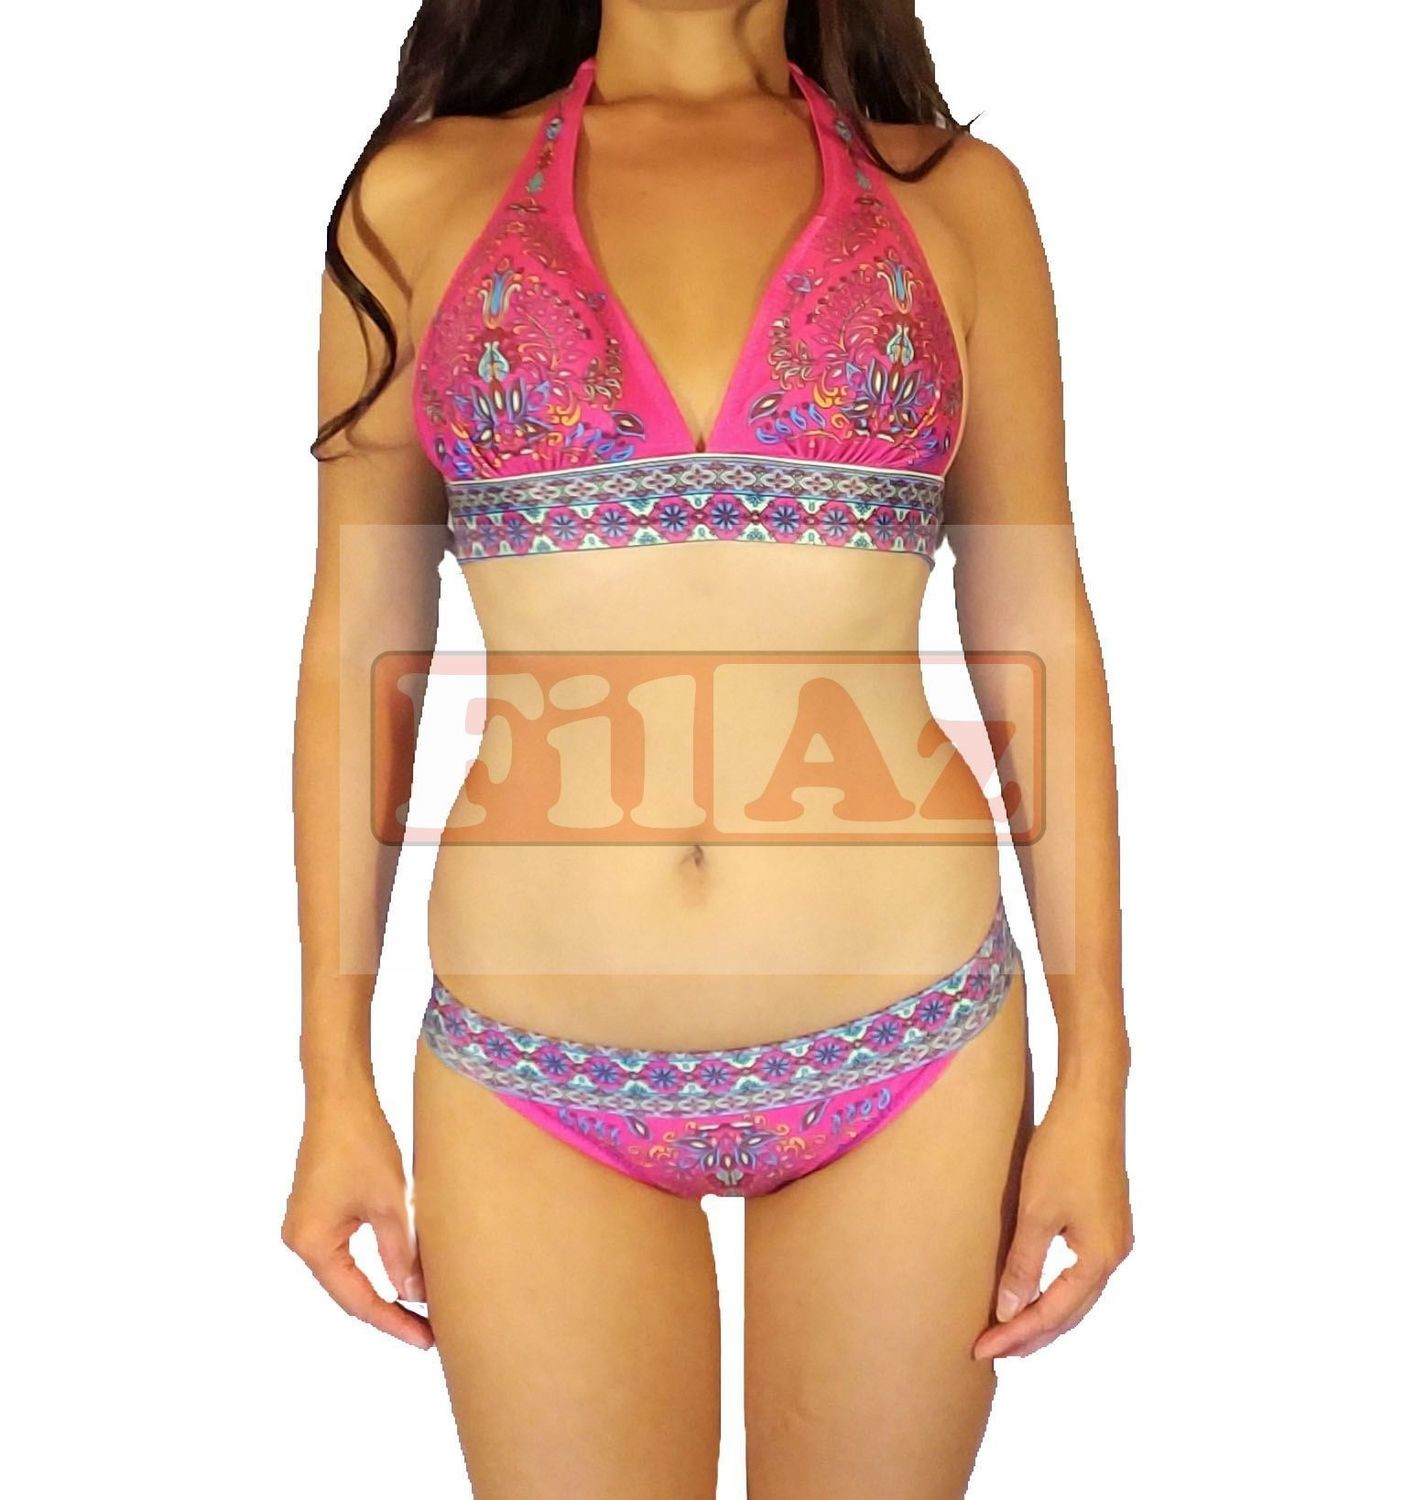 womens pink and purple floral two piece halterneck bikini swimsuit